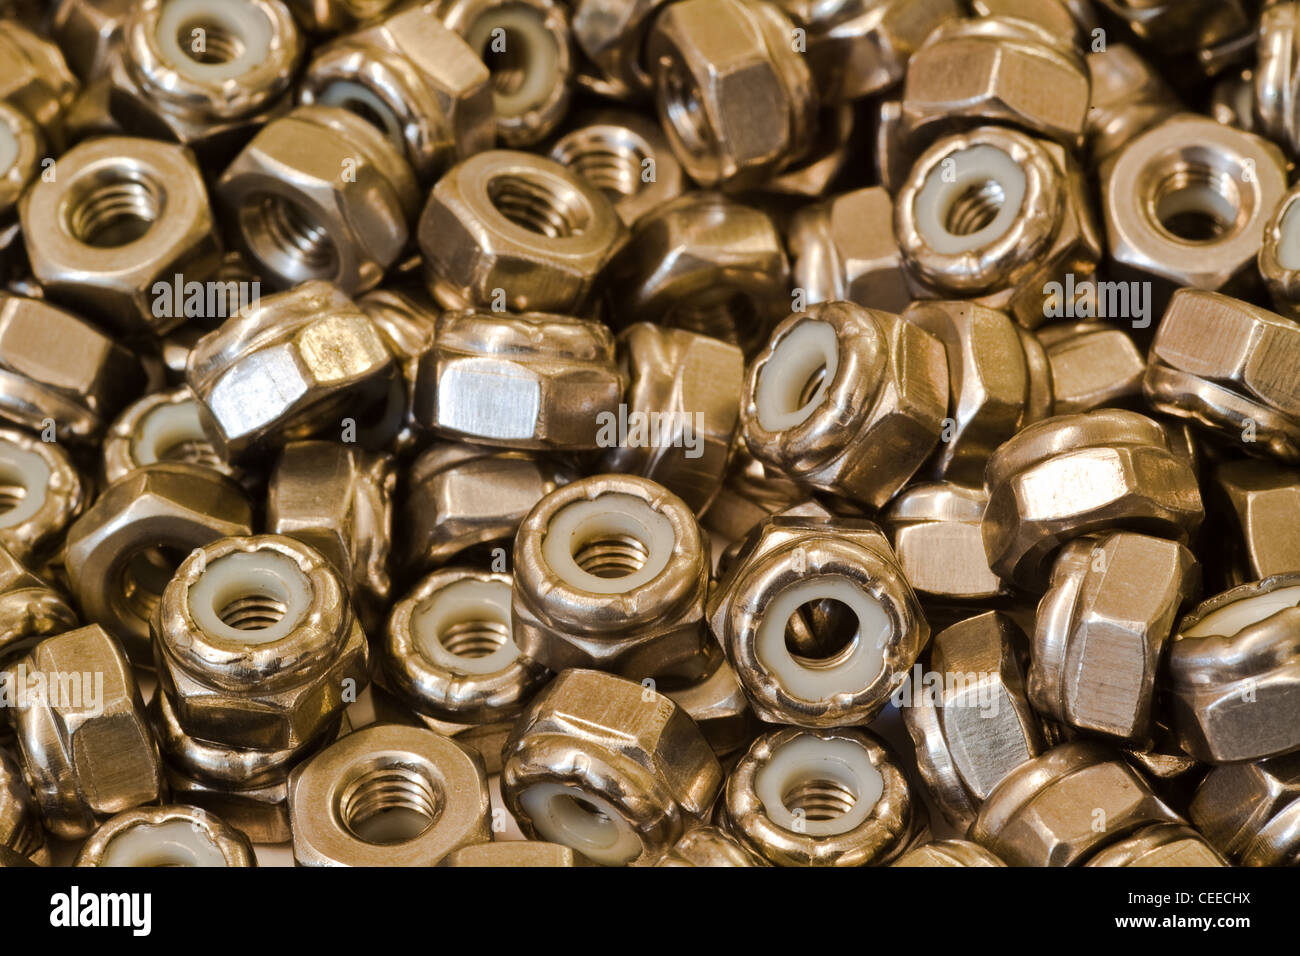 An abstract image of steel self-locking nuts - Stock Image